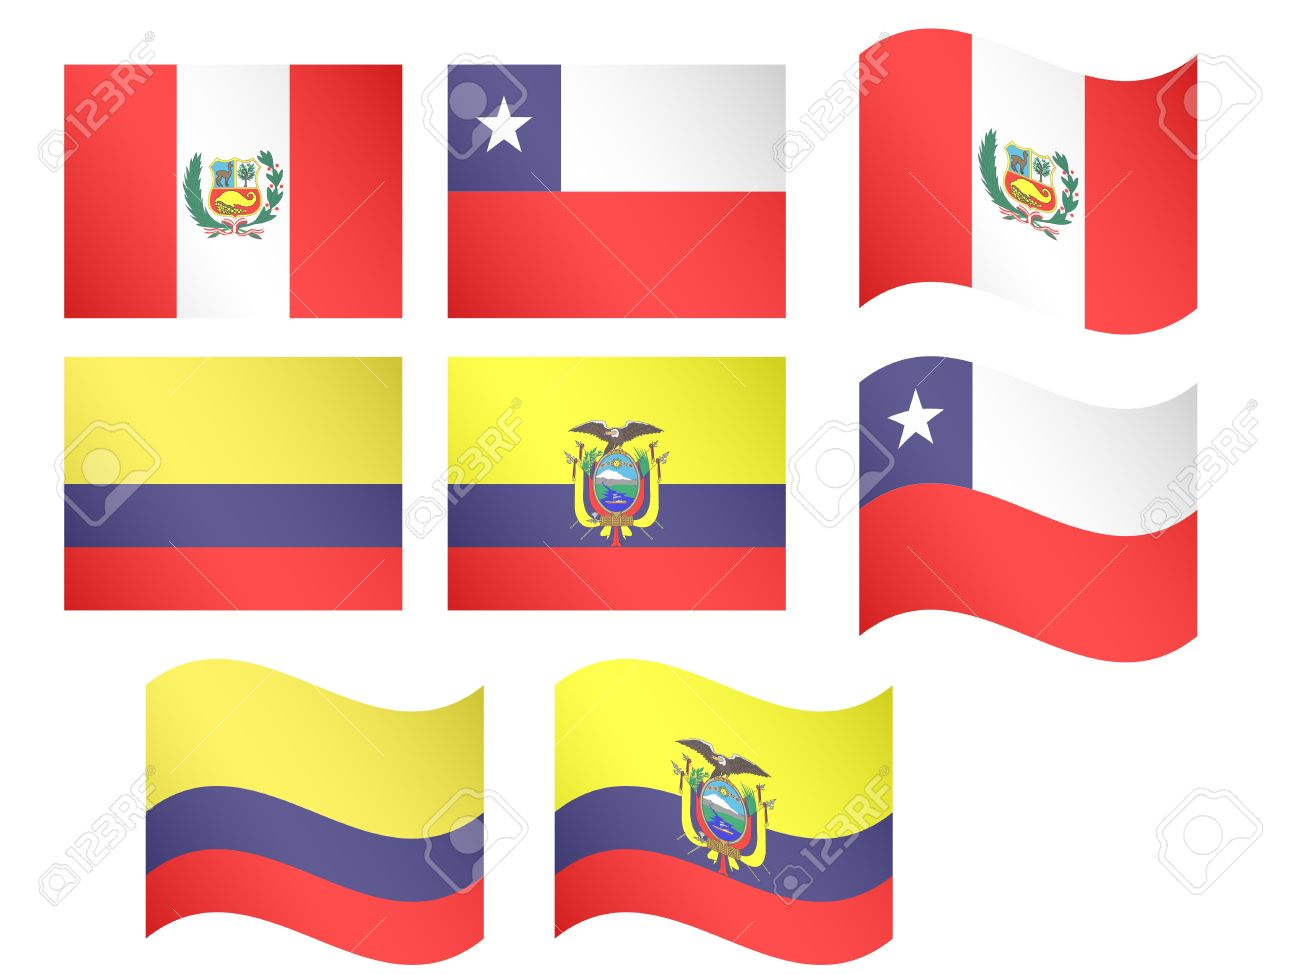 757 Republic Of Colombia Stock Vector Illustration And Royalty.